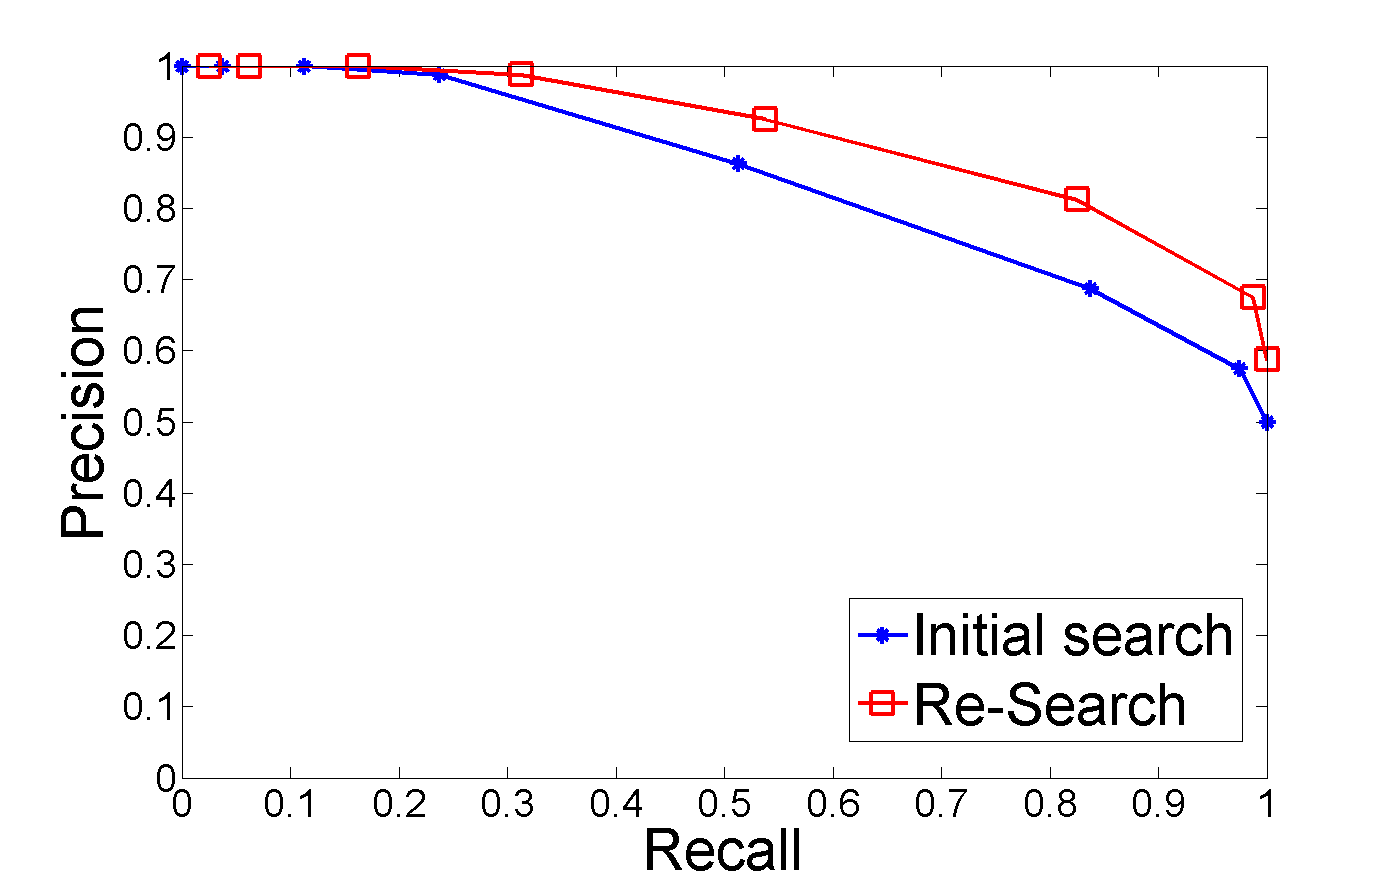 precision and recall (there are other metrics for combining precision and recall, such as the geometric mean of precision and recall, but the f1 score is the most commonly used) if we want to create a balanced classification model with the optimal balance of recall and precision, then we try to maximize the f1 score.